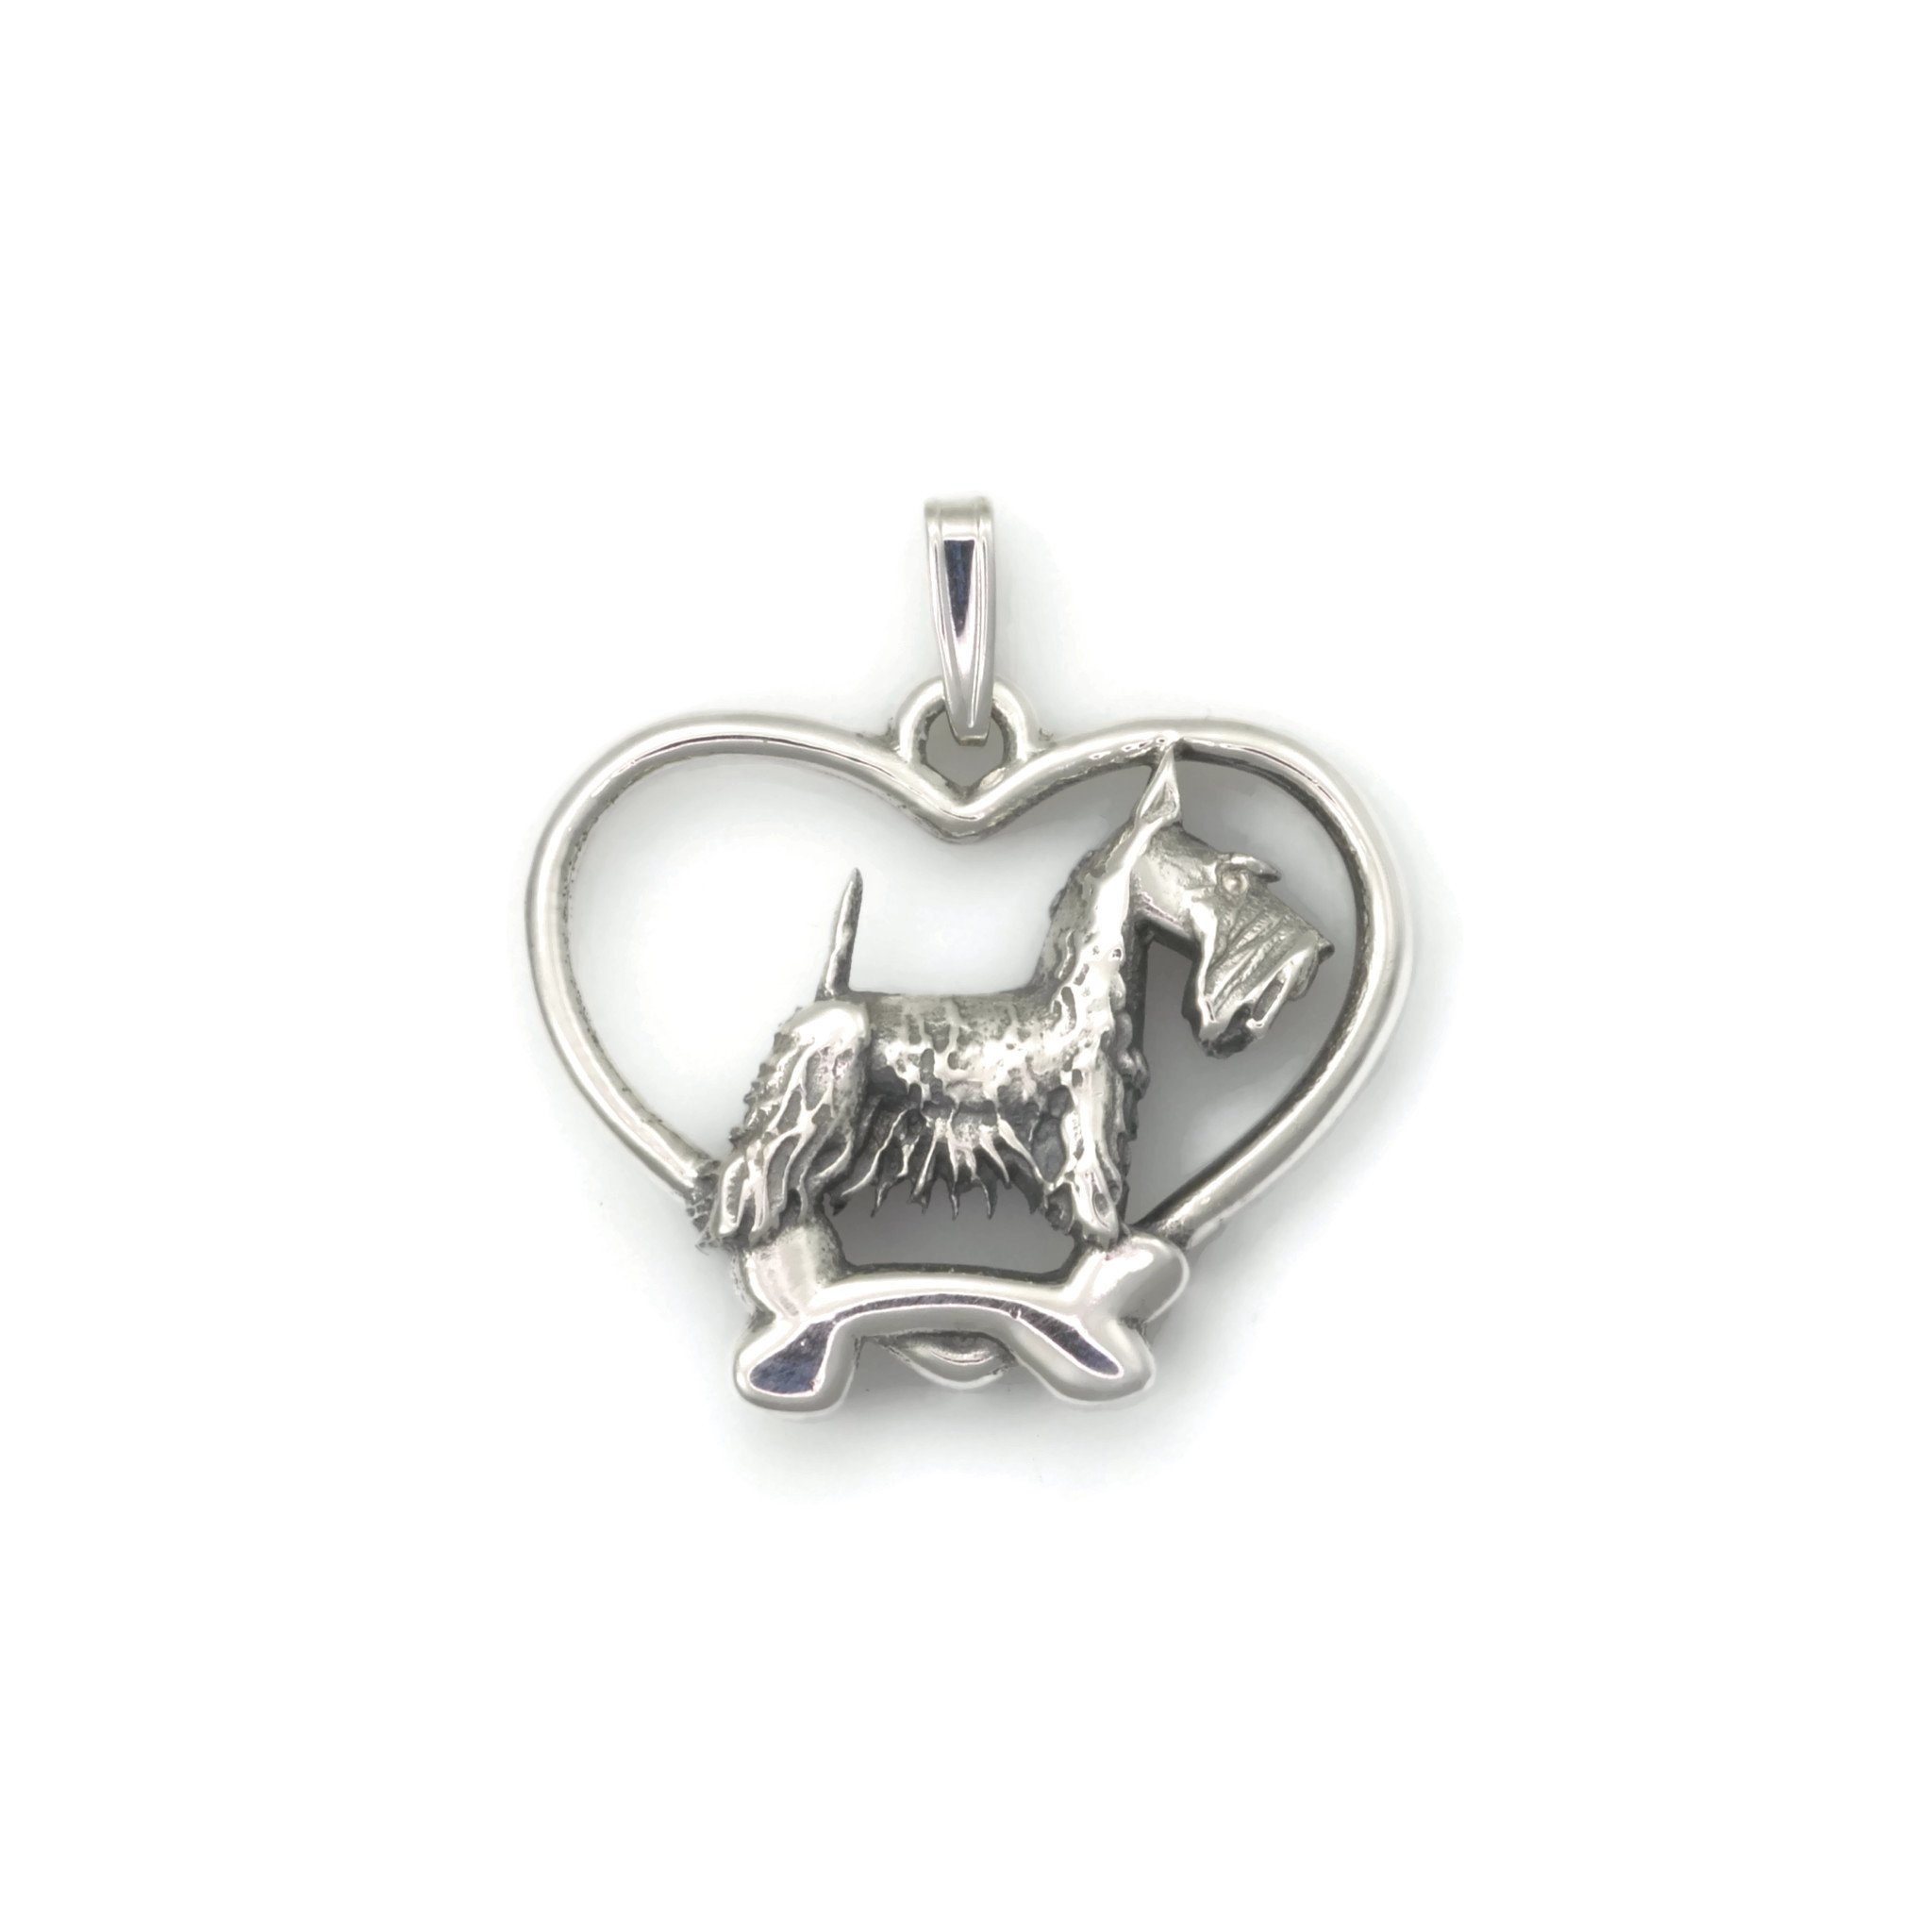 Sterling Silver Scottish Terrier Pendant, Silver Scottie Necklace, Fine Scottish Terrier Jewelry fr Donna Pizarro's Animal Whimsey Collection